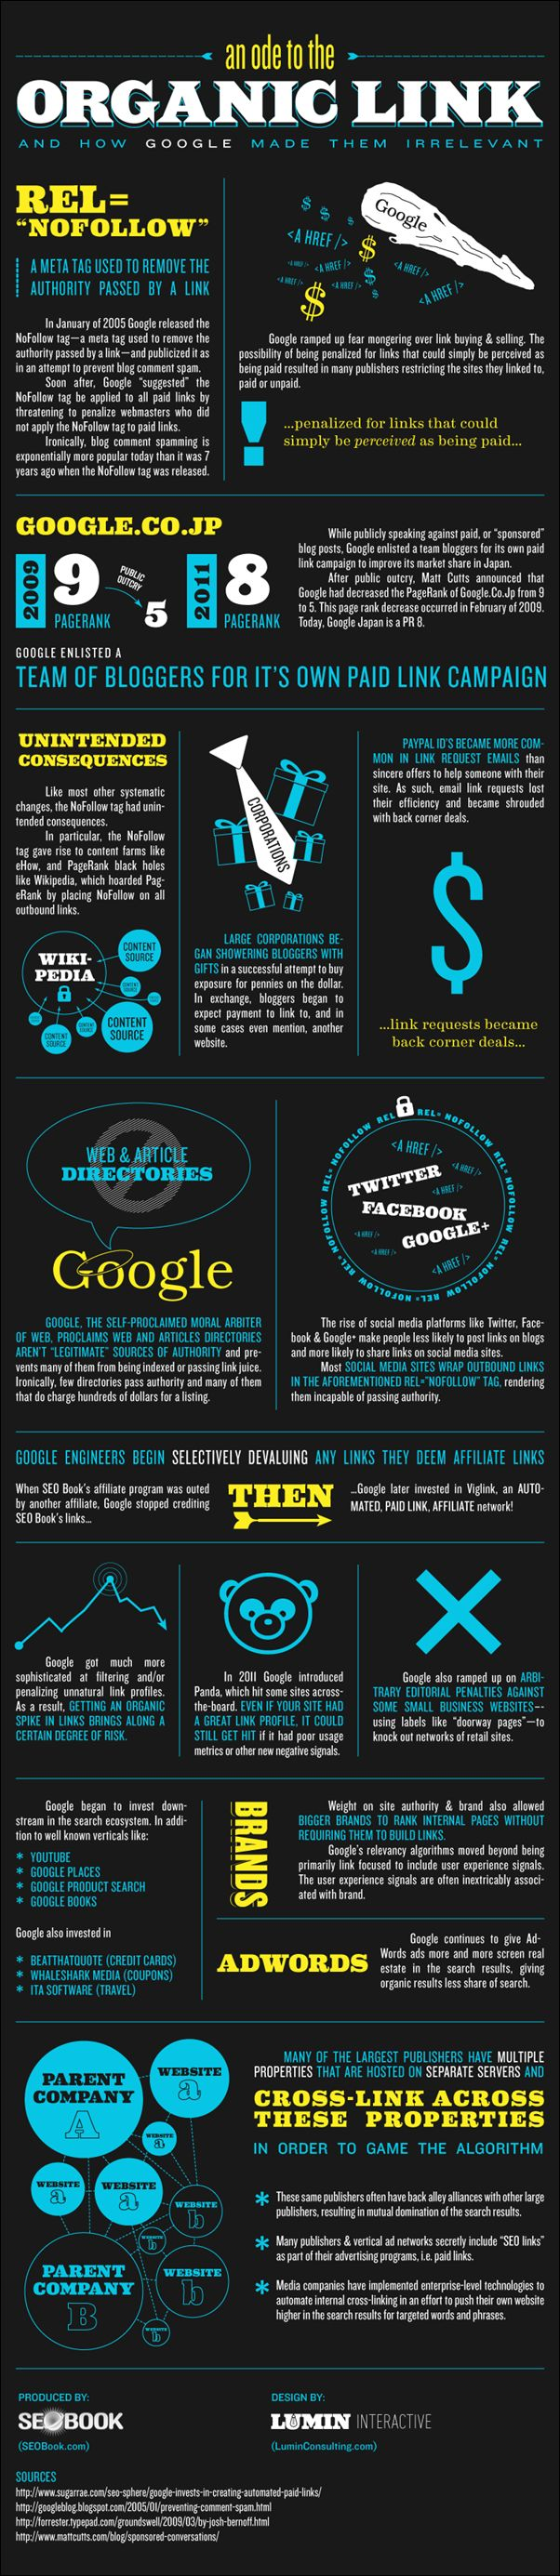 Bye Bye Organic Links - An Ode To the Organic Link  #seo #linkbuilding #infographic #organic